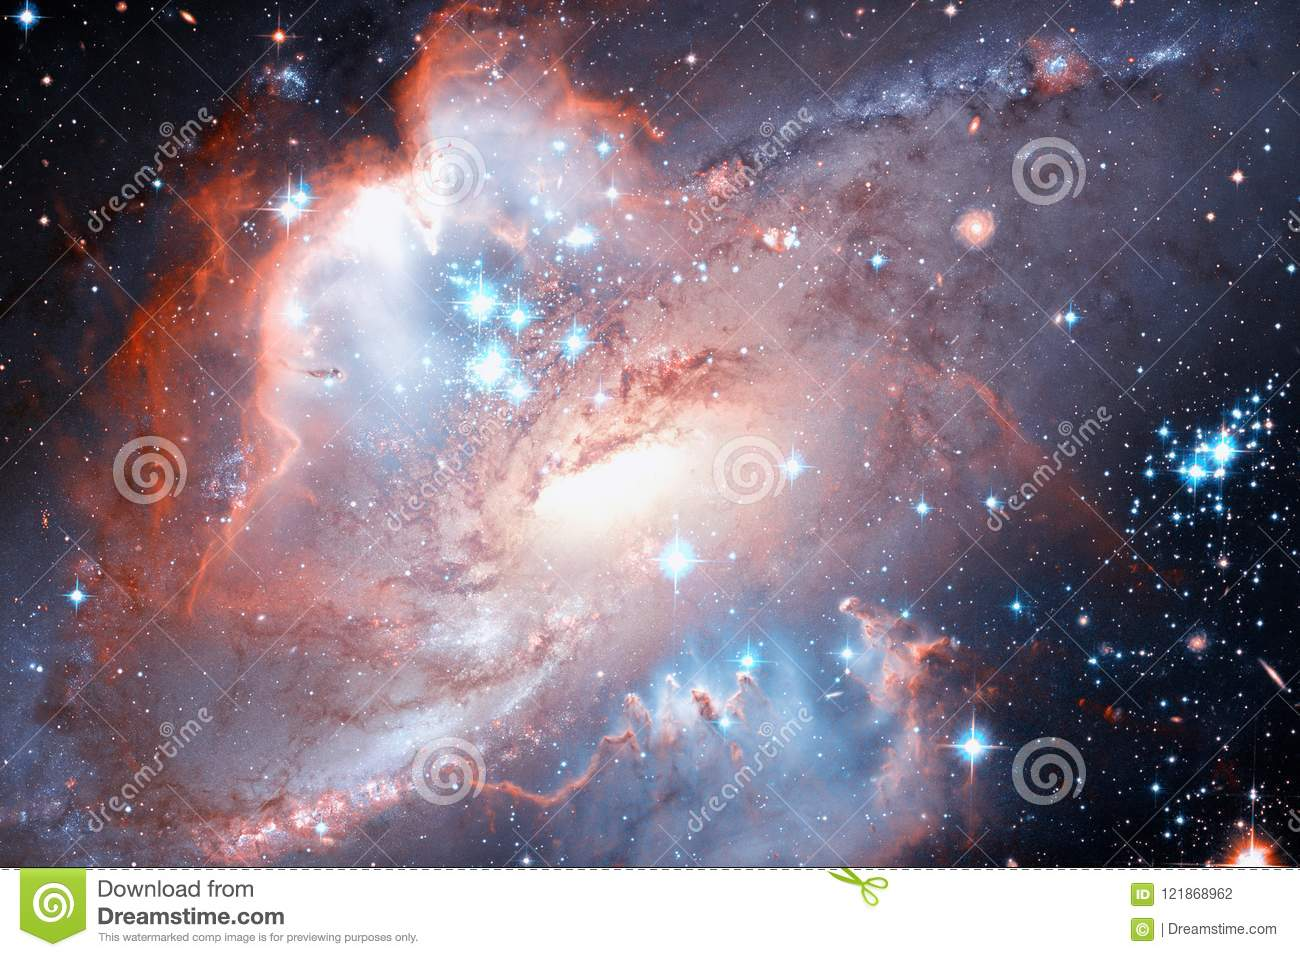 Spiral galaxy and stars in deep space. Elements of this image furnished by NASA